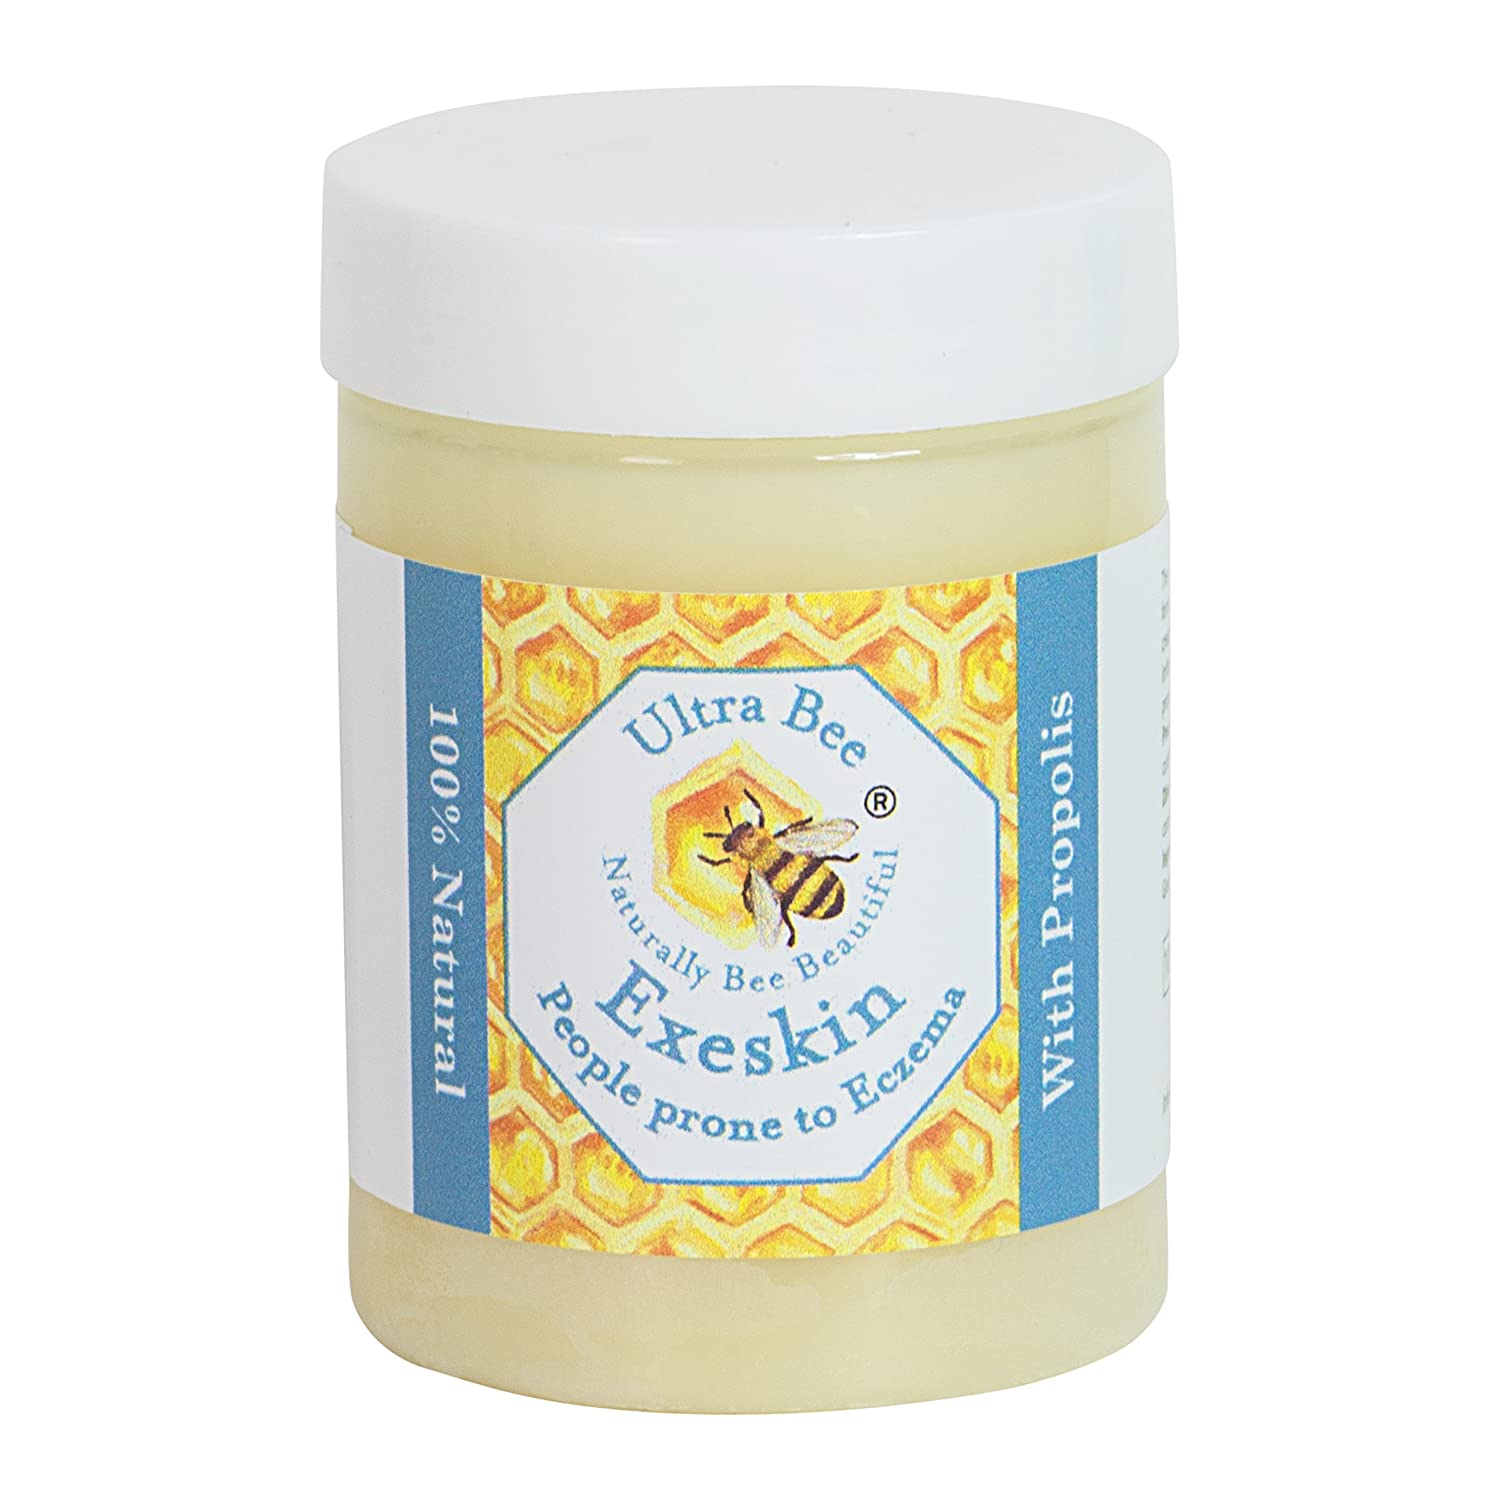 100% Natural Exeskin Dry Itchy Irritable Skin Balm suitable for People Prone to Eczema, Psoriasis,Dermatitis. Made with Beehive and Plant Products 100ml Ultra Bee